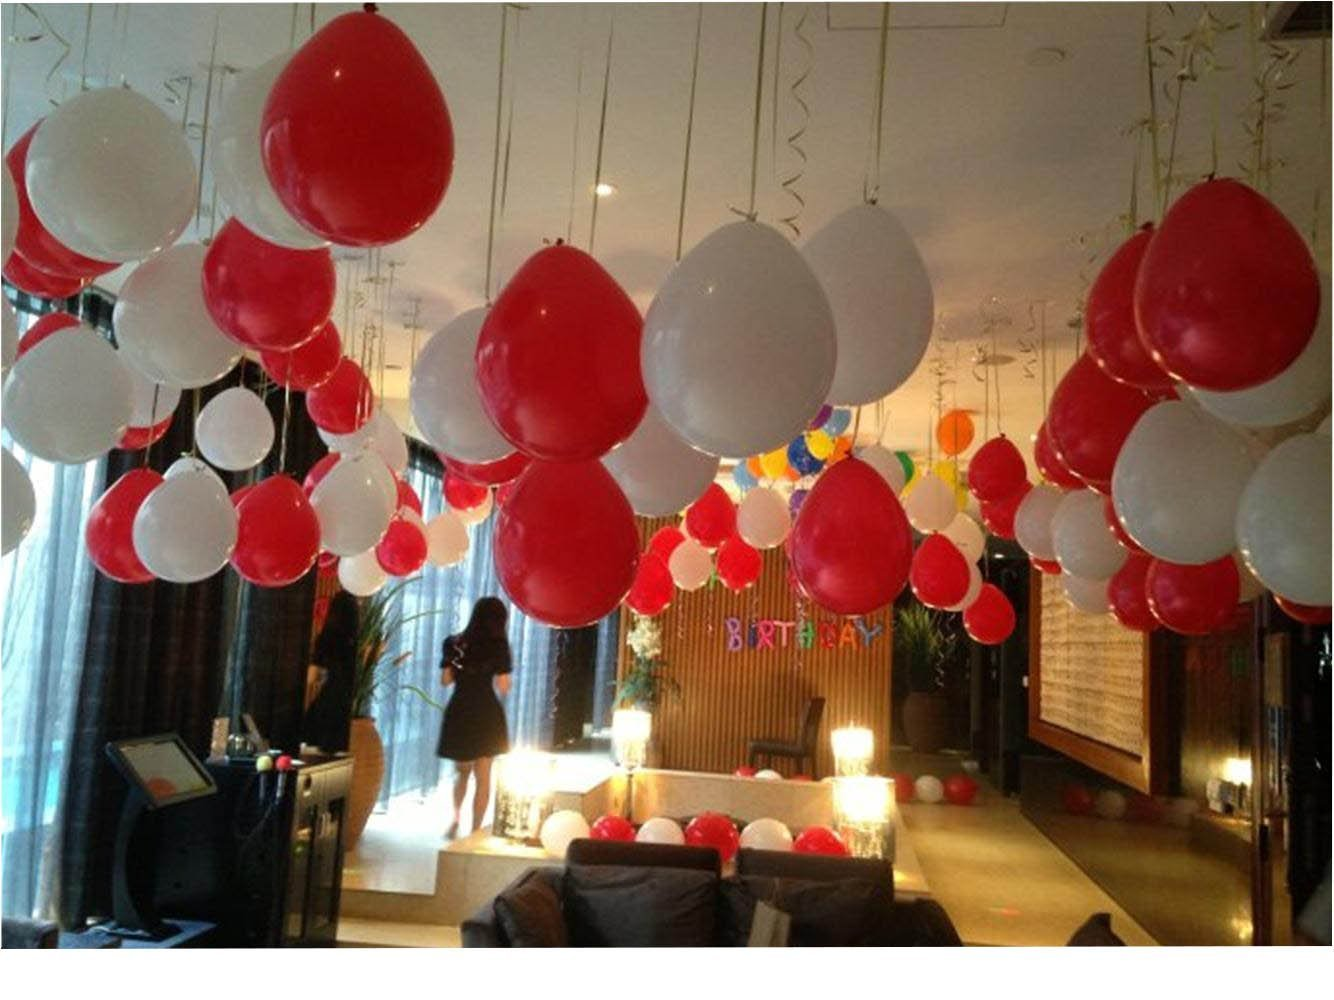 100 Premium Quality Balloons: 12 inch Red and white latex balloons/wedding/birthday party decorations and Events Christmas Party and etc. by KADBANER (Image #2)